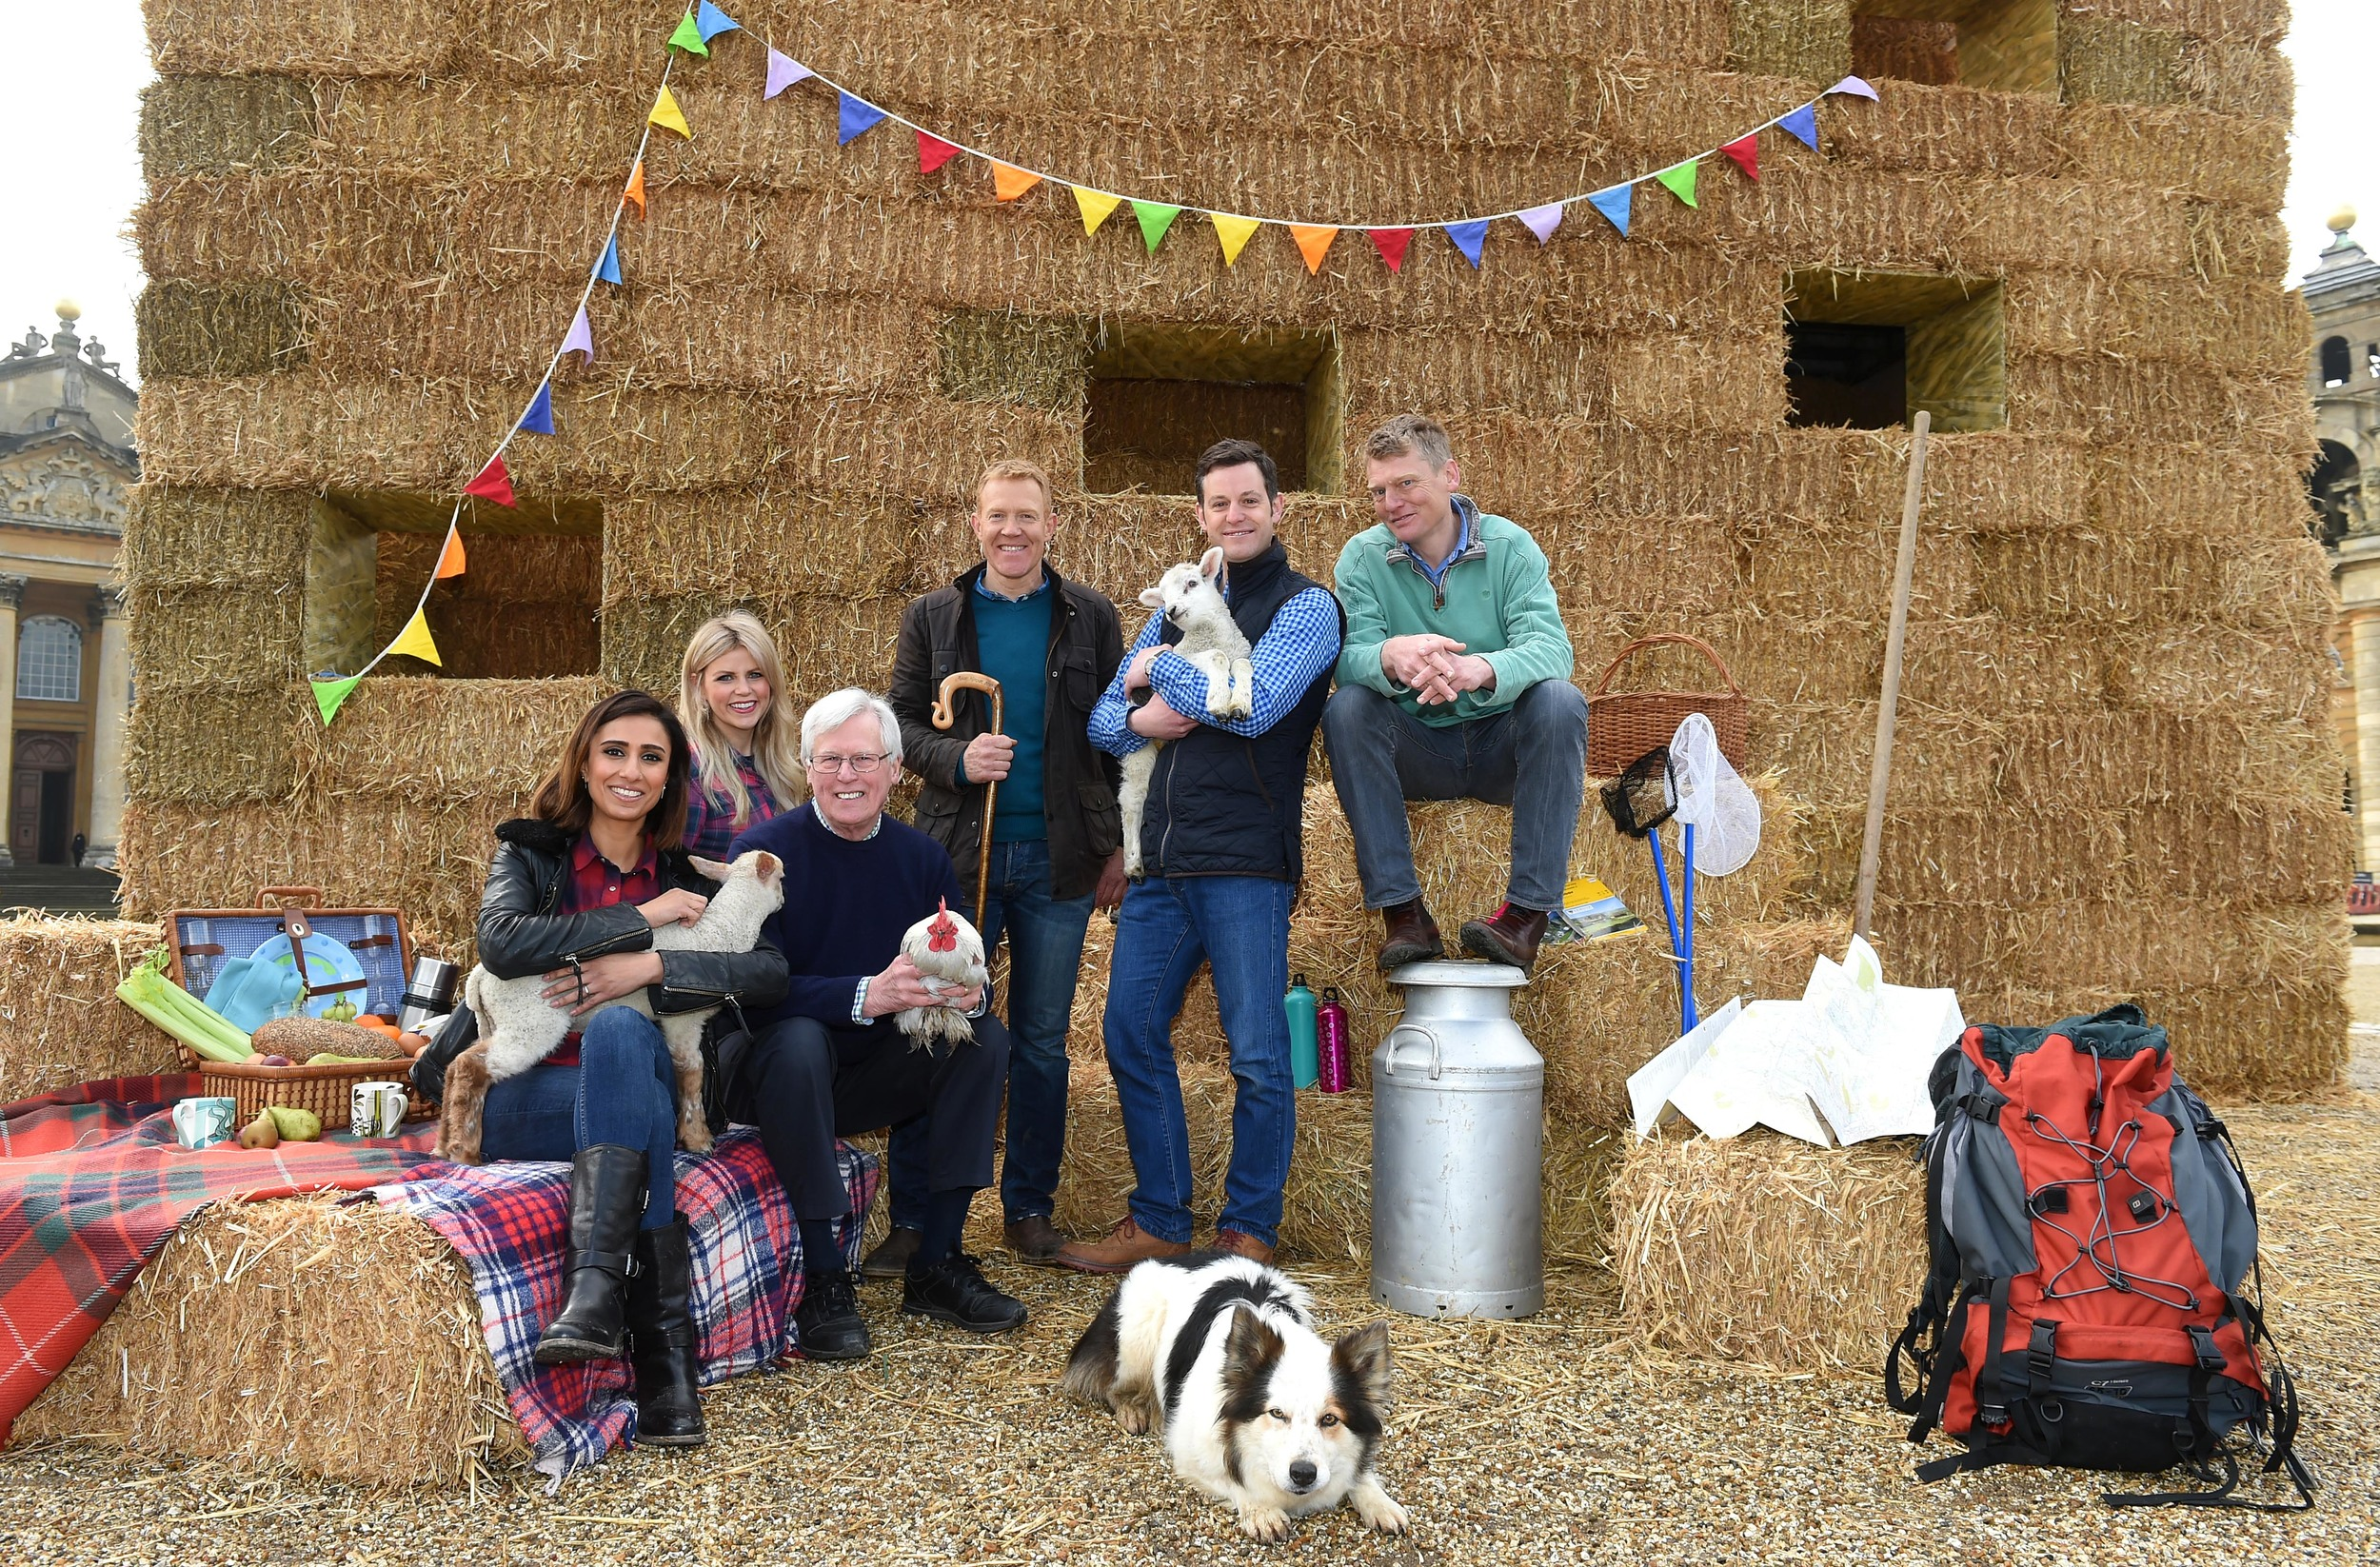 The Countryfile presenters will be at Counrtyfile Live in August this year.